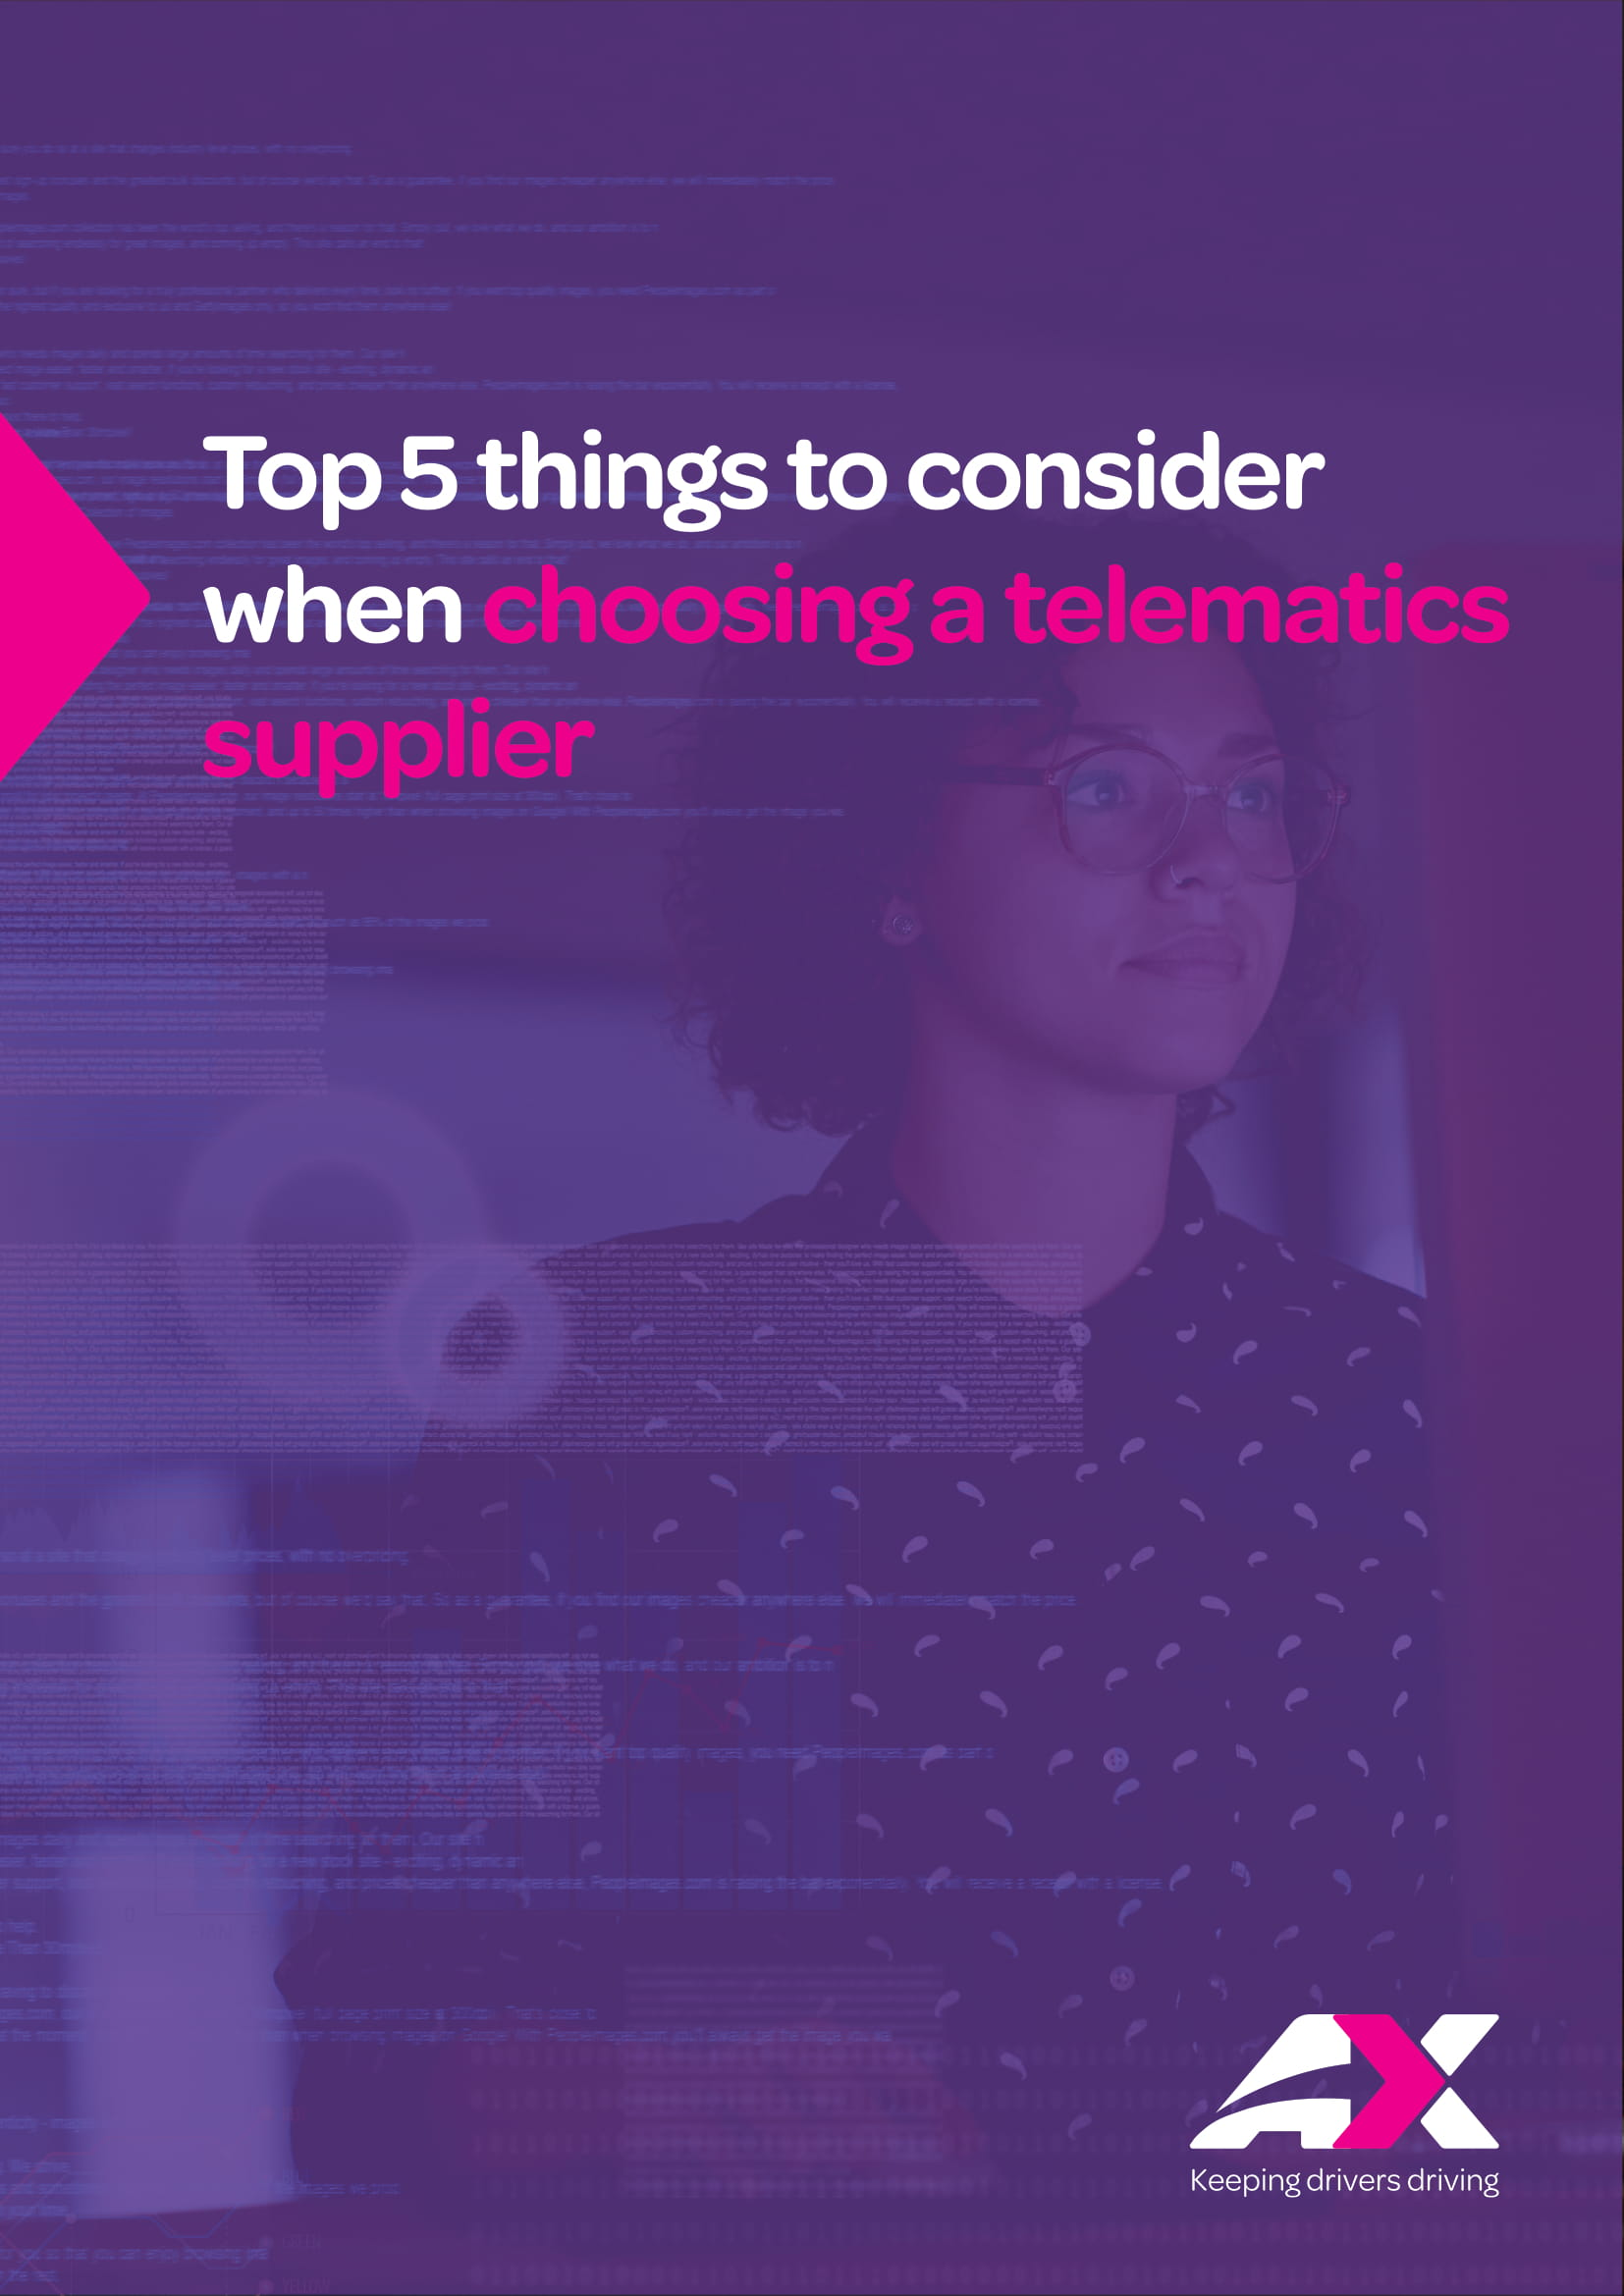 5 things to consider when choosing a telematics supplier